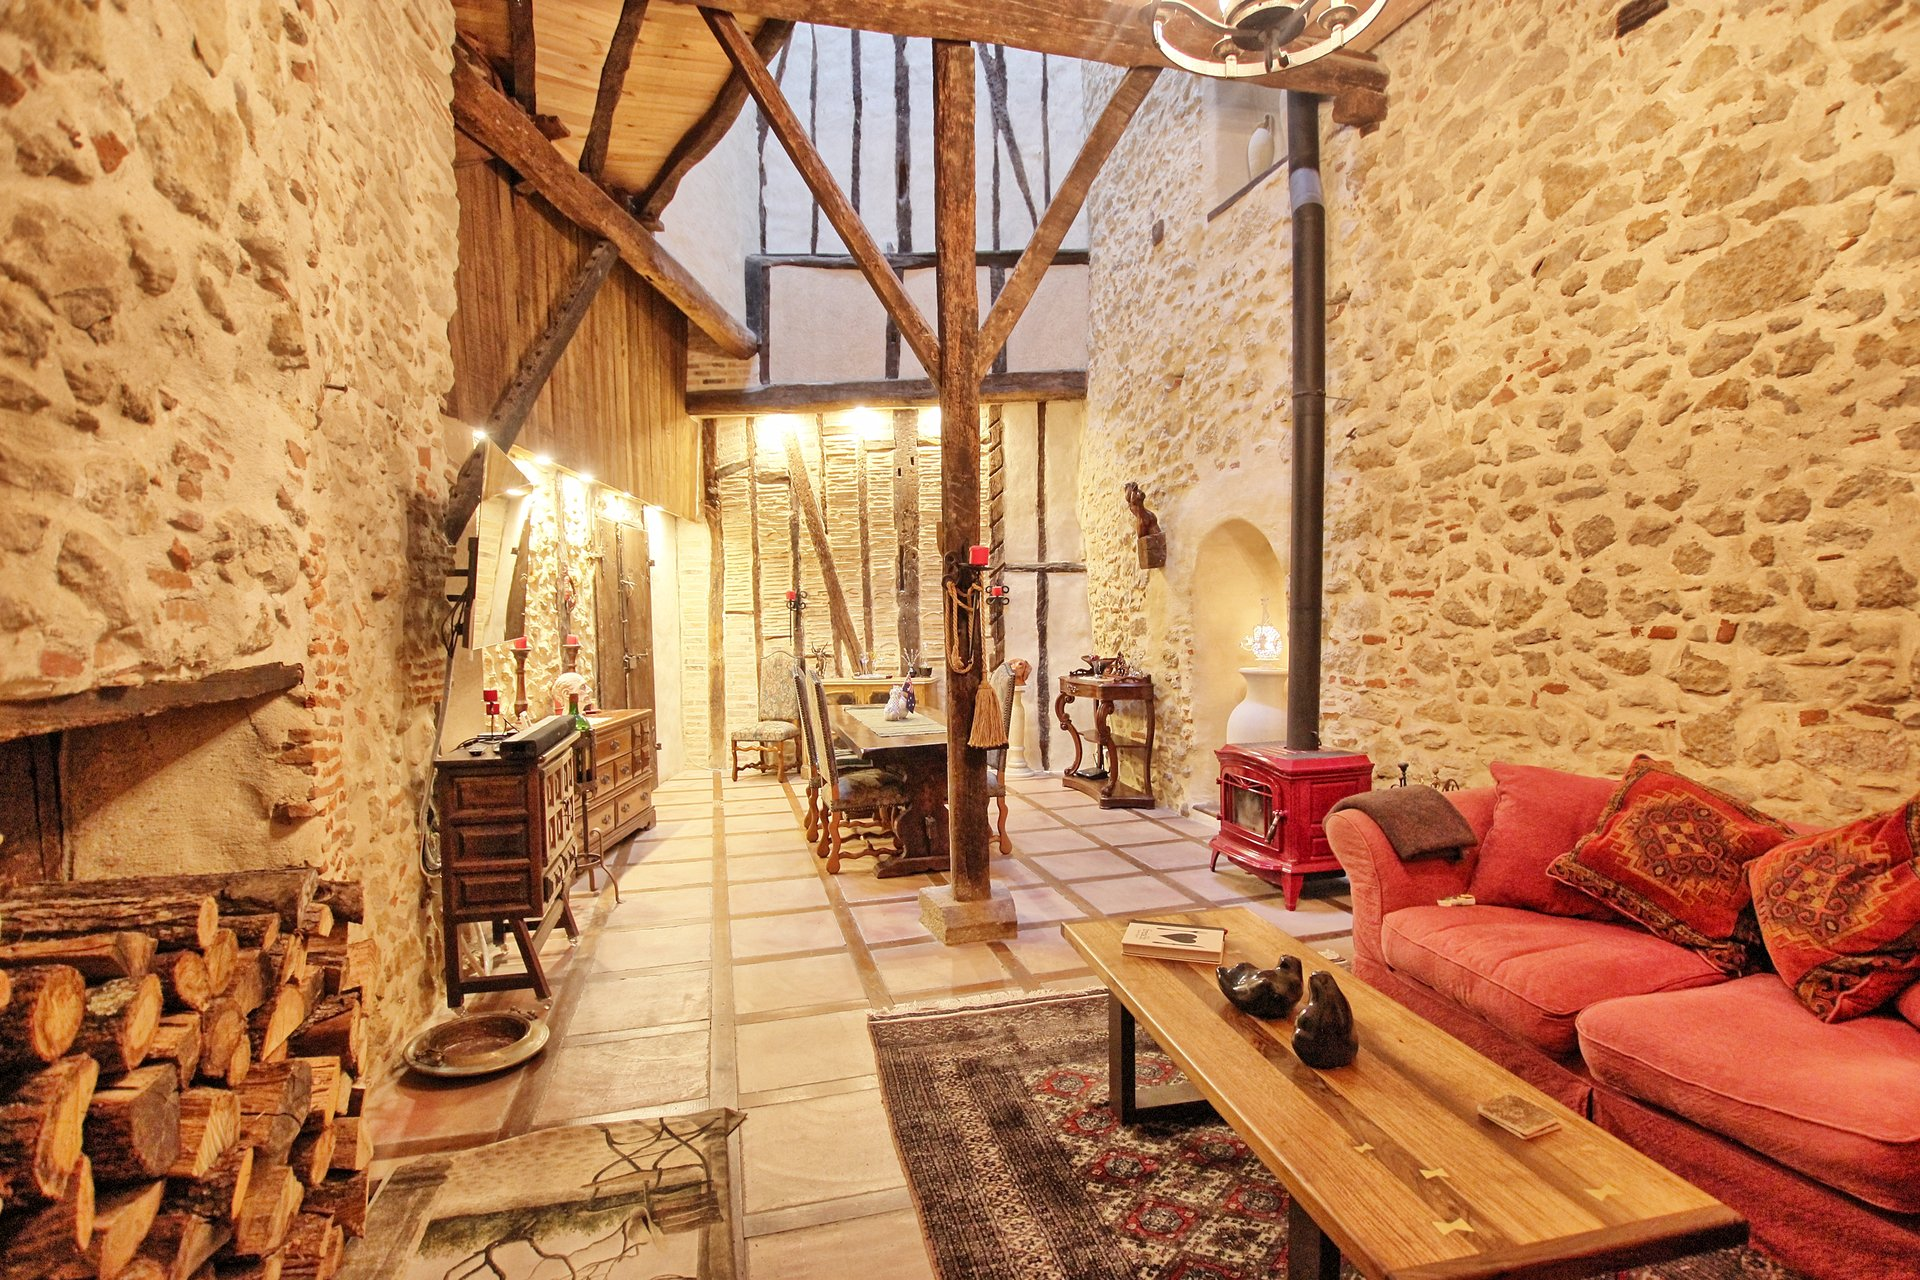 5 bedroom Maison de Maitre style with a light filled atrium in the centre of the house